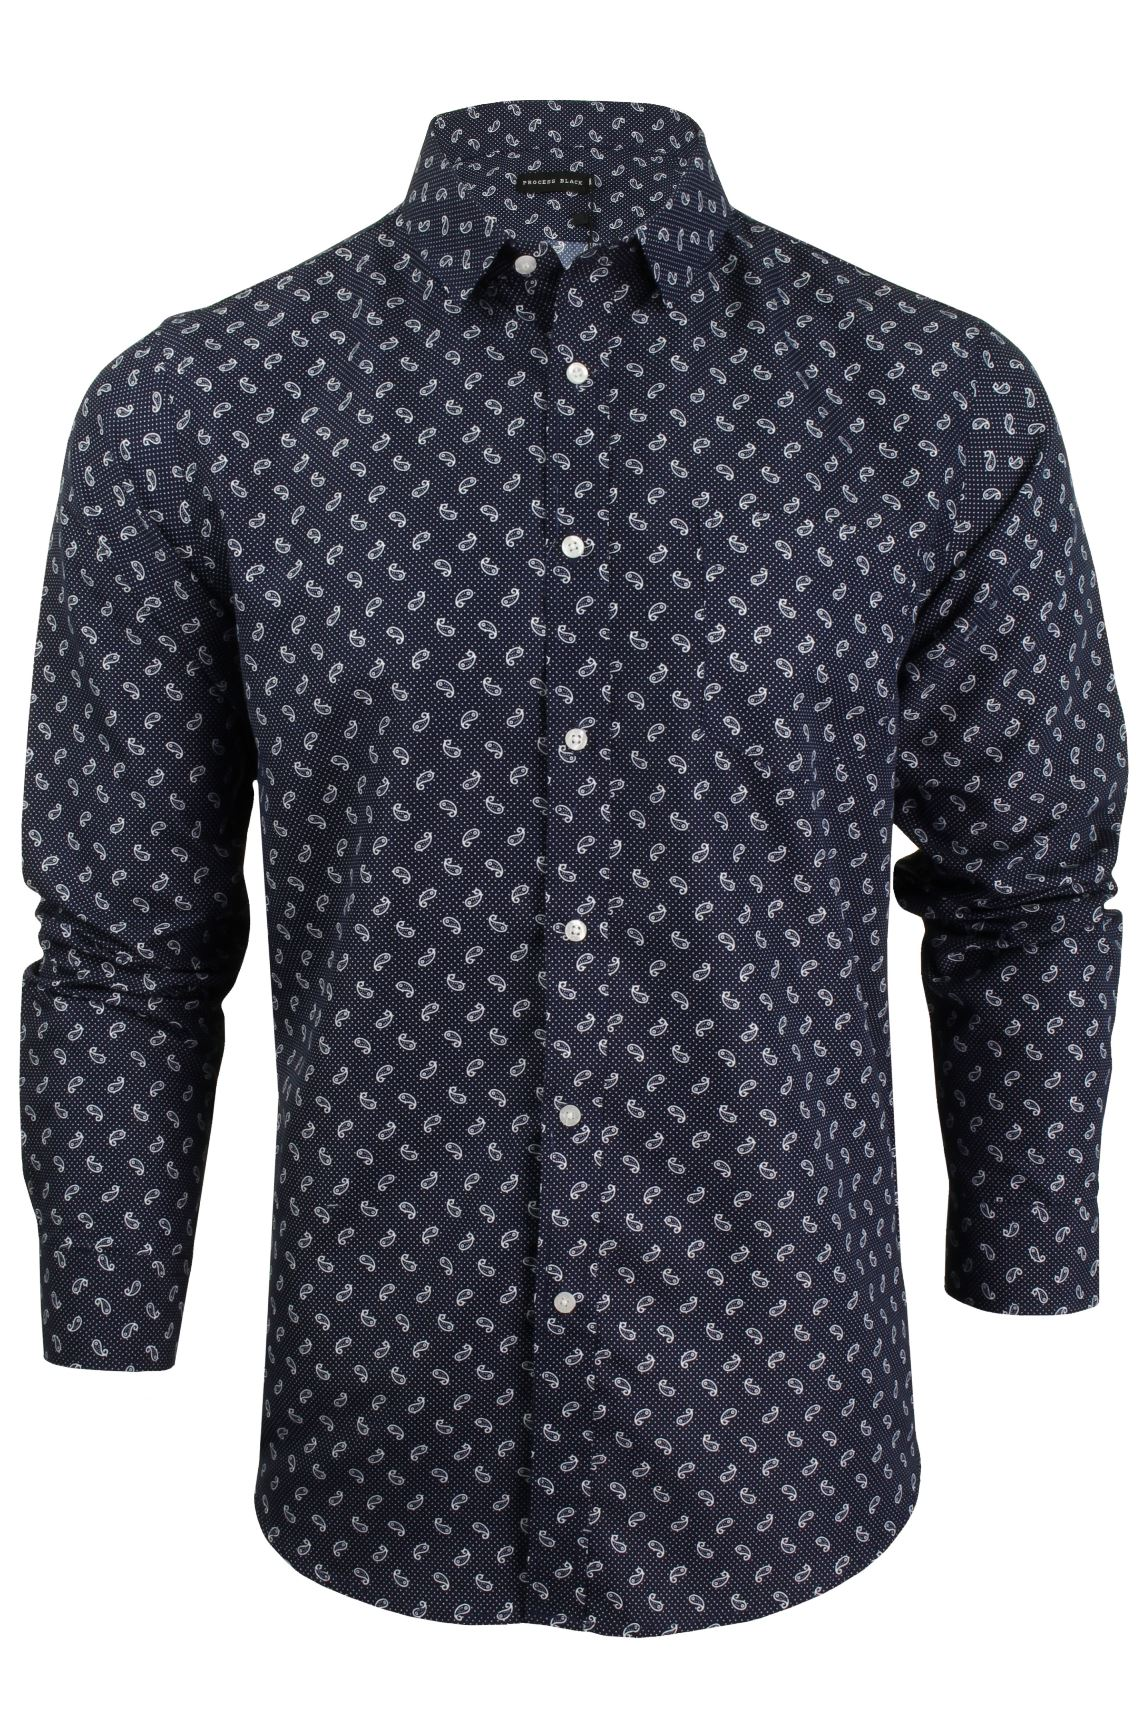 Mens Paisley Print Shirt By Process Black 39 Paisley 39 Long